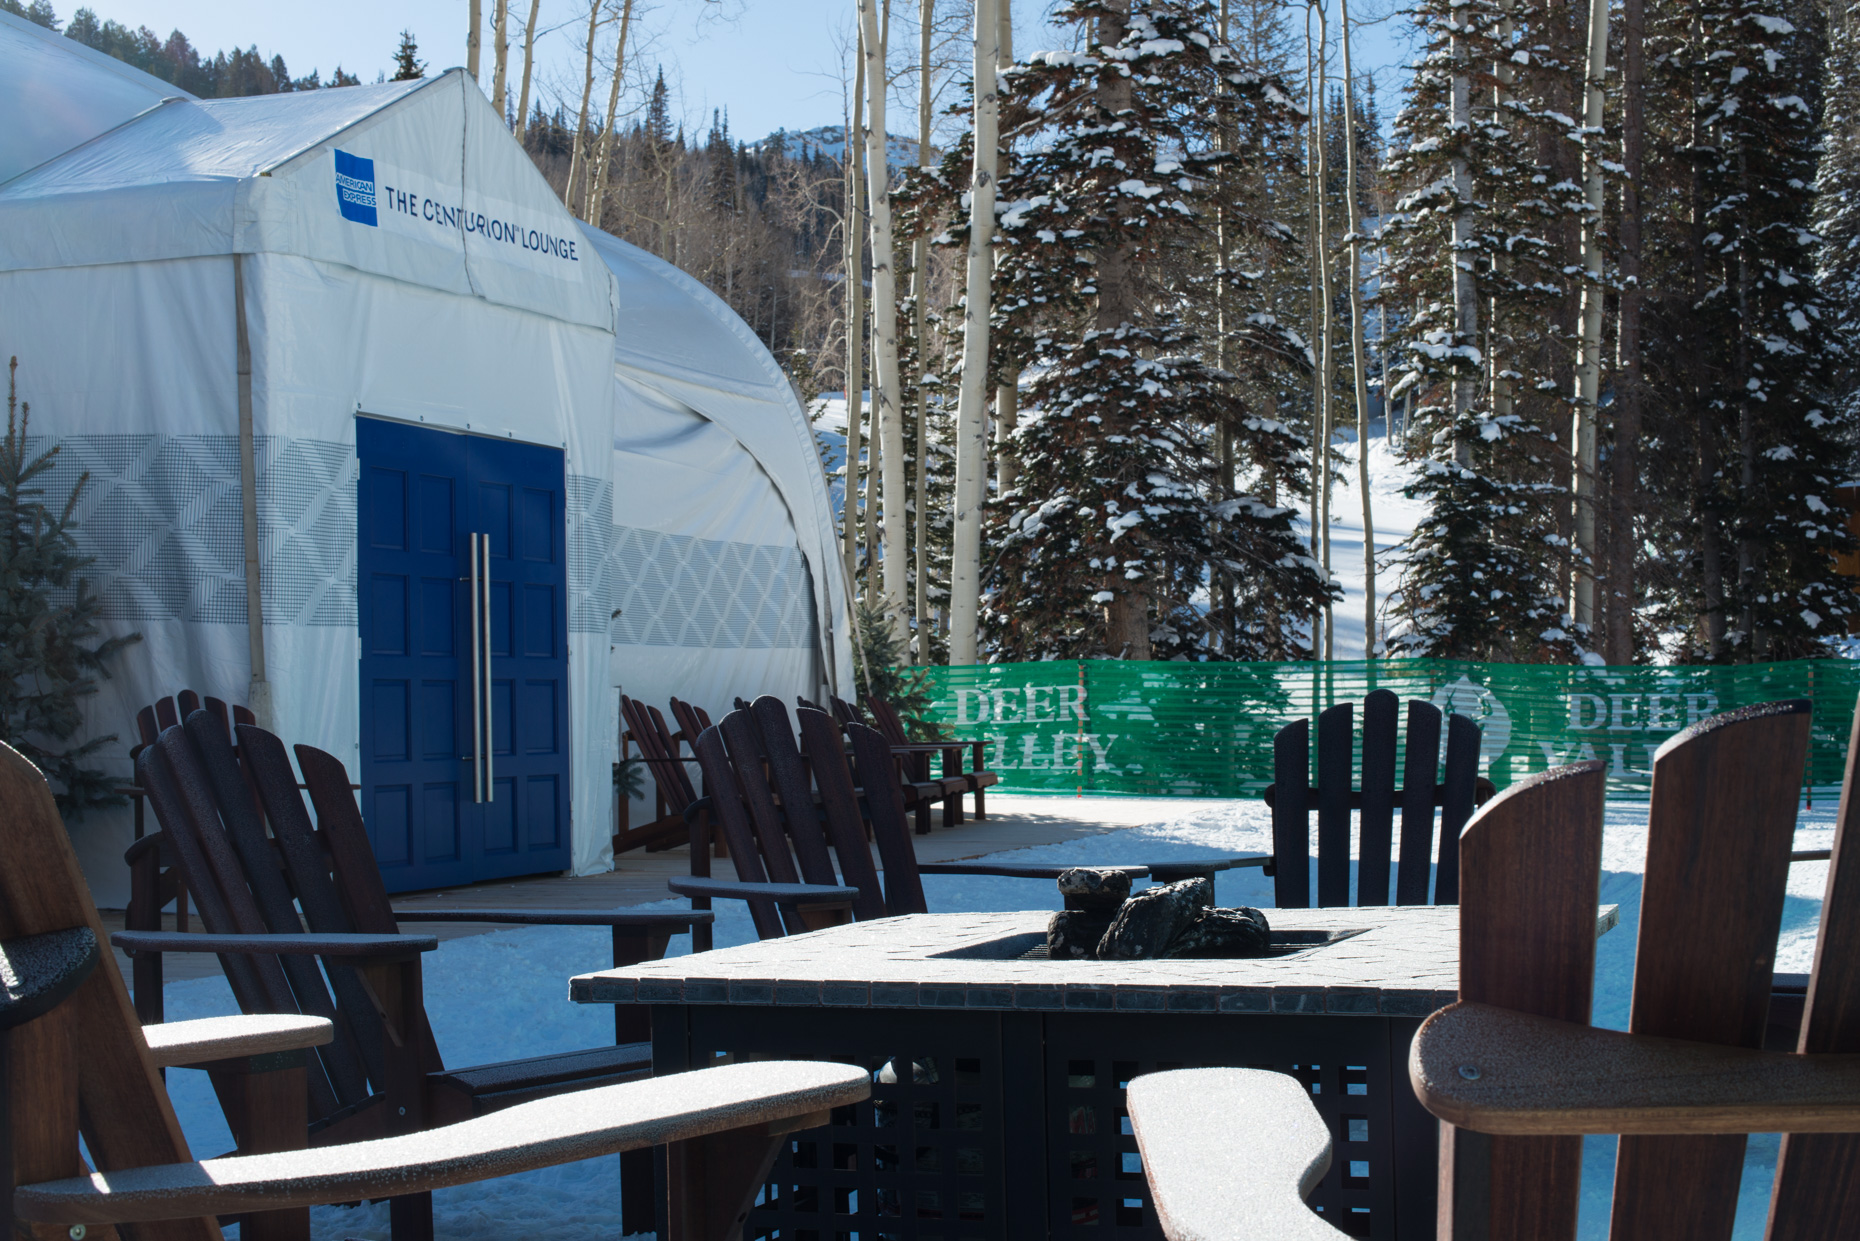 2015-03-06-AMEX-Deer-Valley-0119